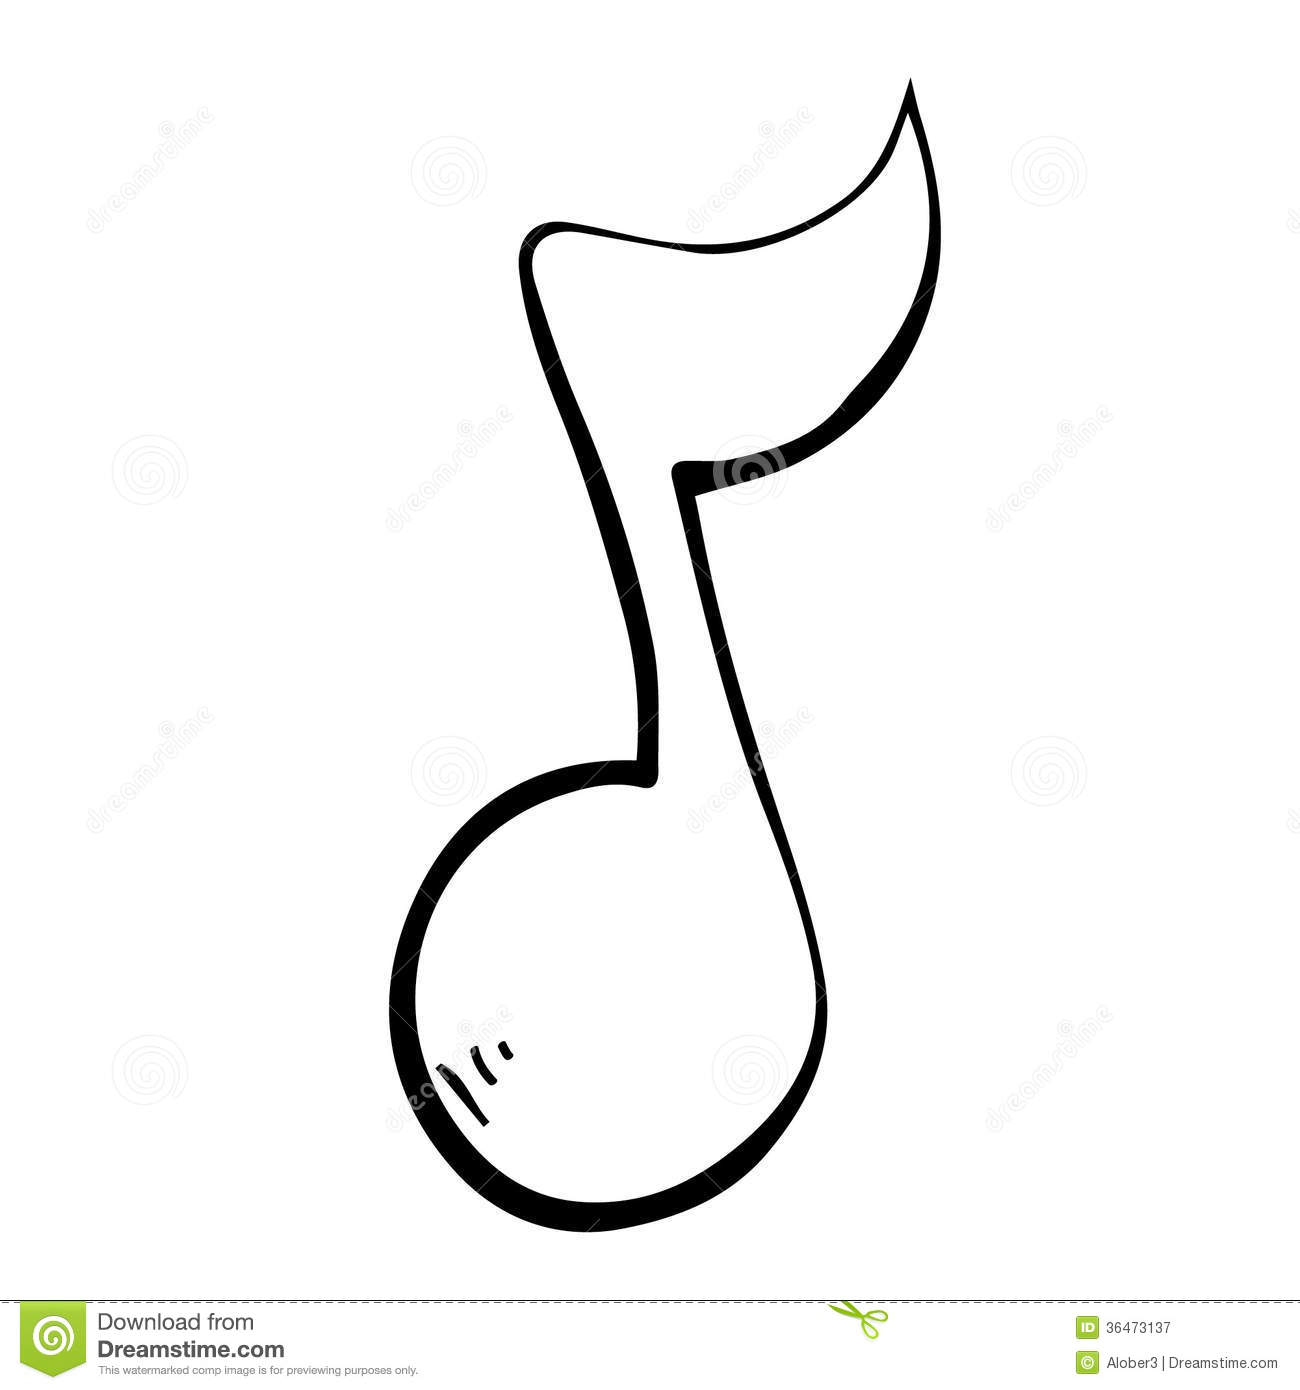 Royalty Free Stock Photography Eighth Note Black White Hand Drawn Sketch Perfect Music Website Image36473137 likewise Post round St  Template 561085 likewise 140 besides  on us map icon